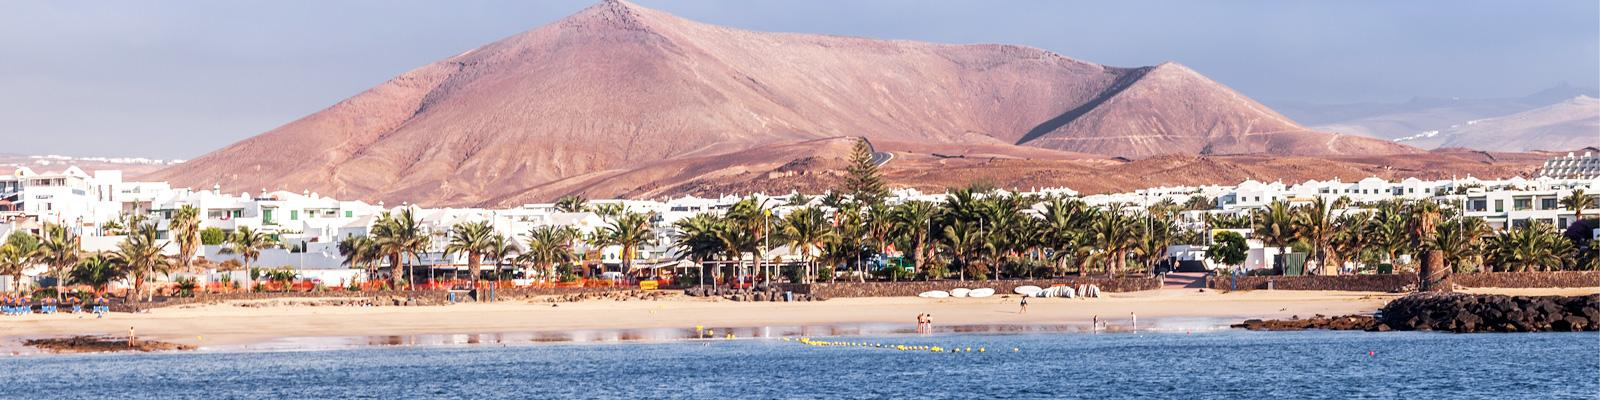 Los Zocos Club Hotel - Lanzarote All Inclusive